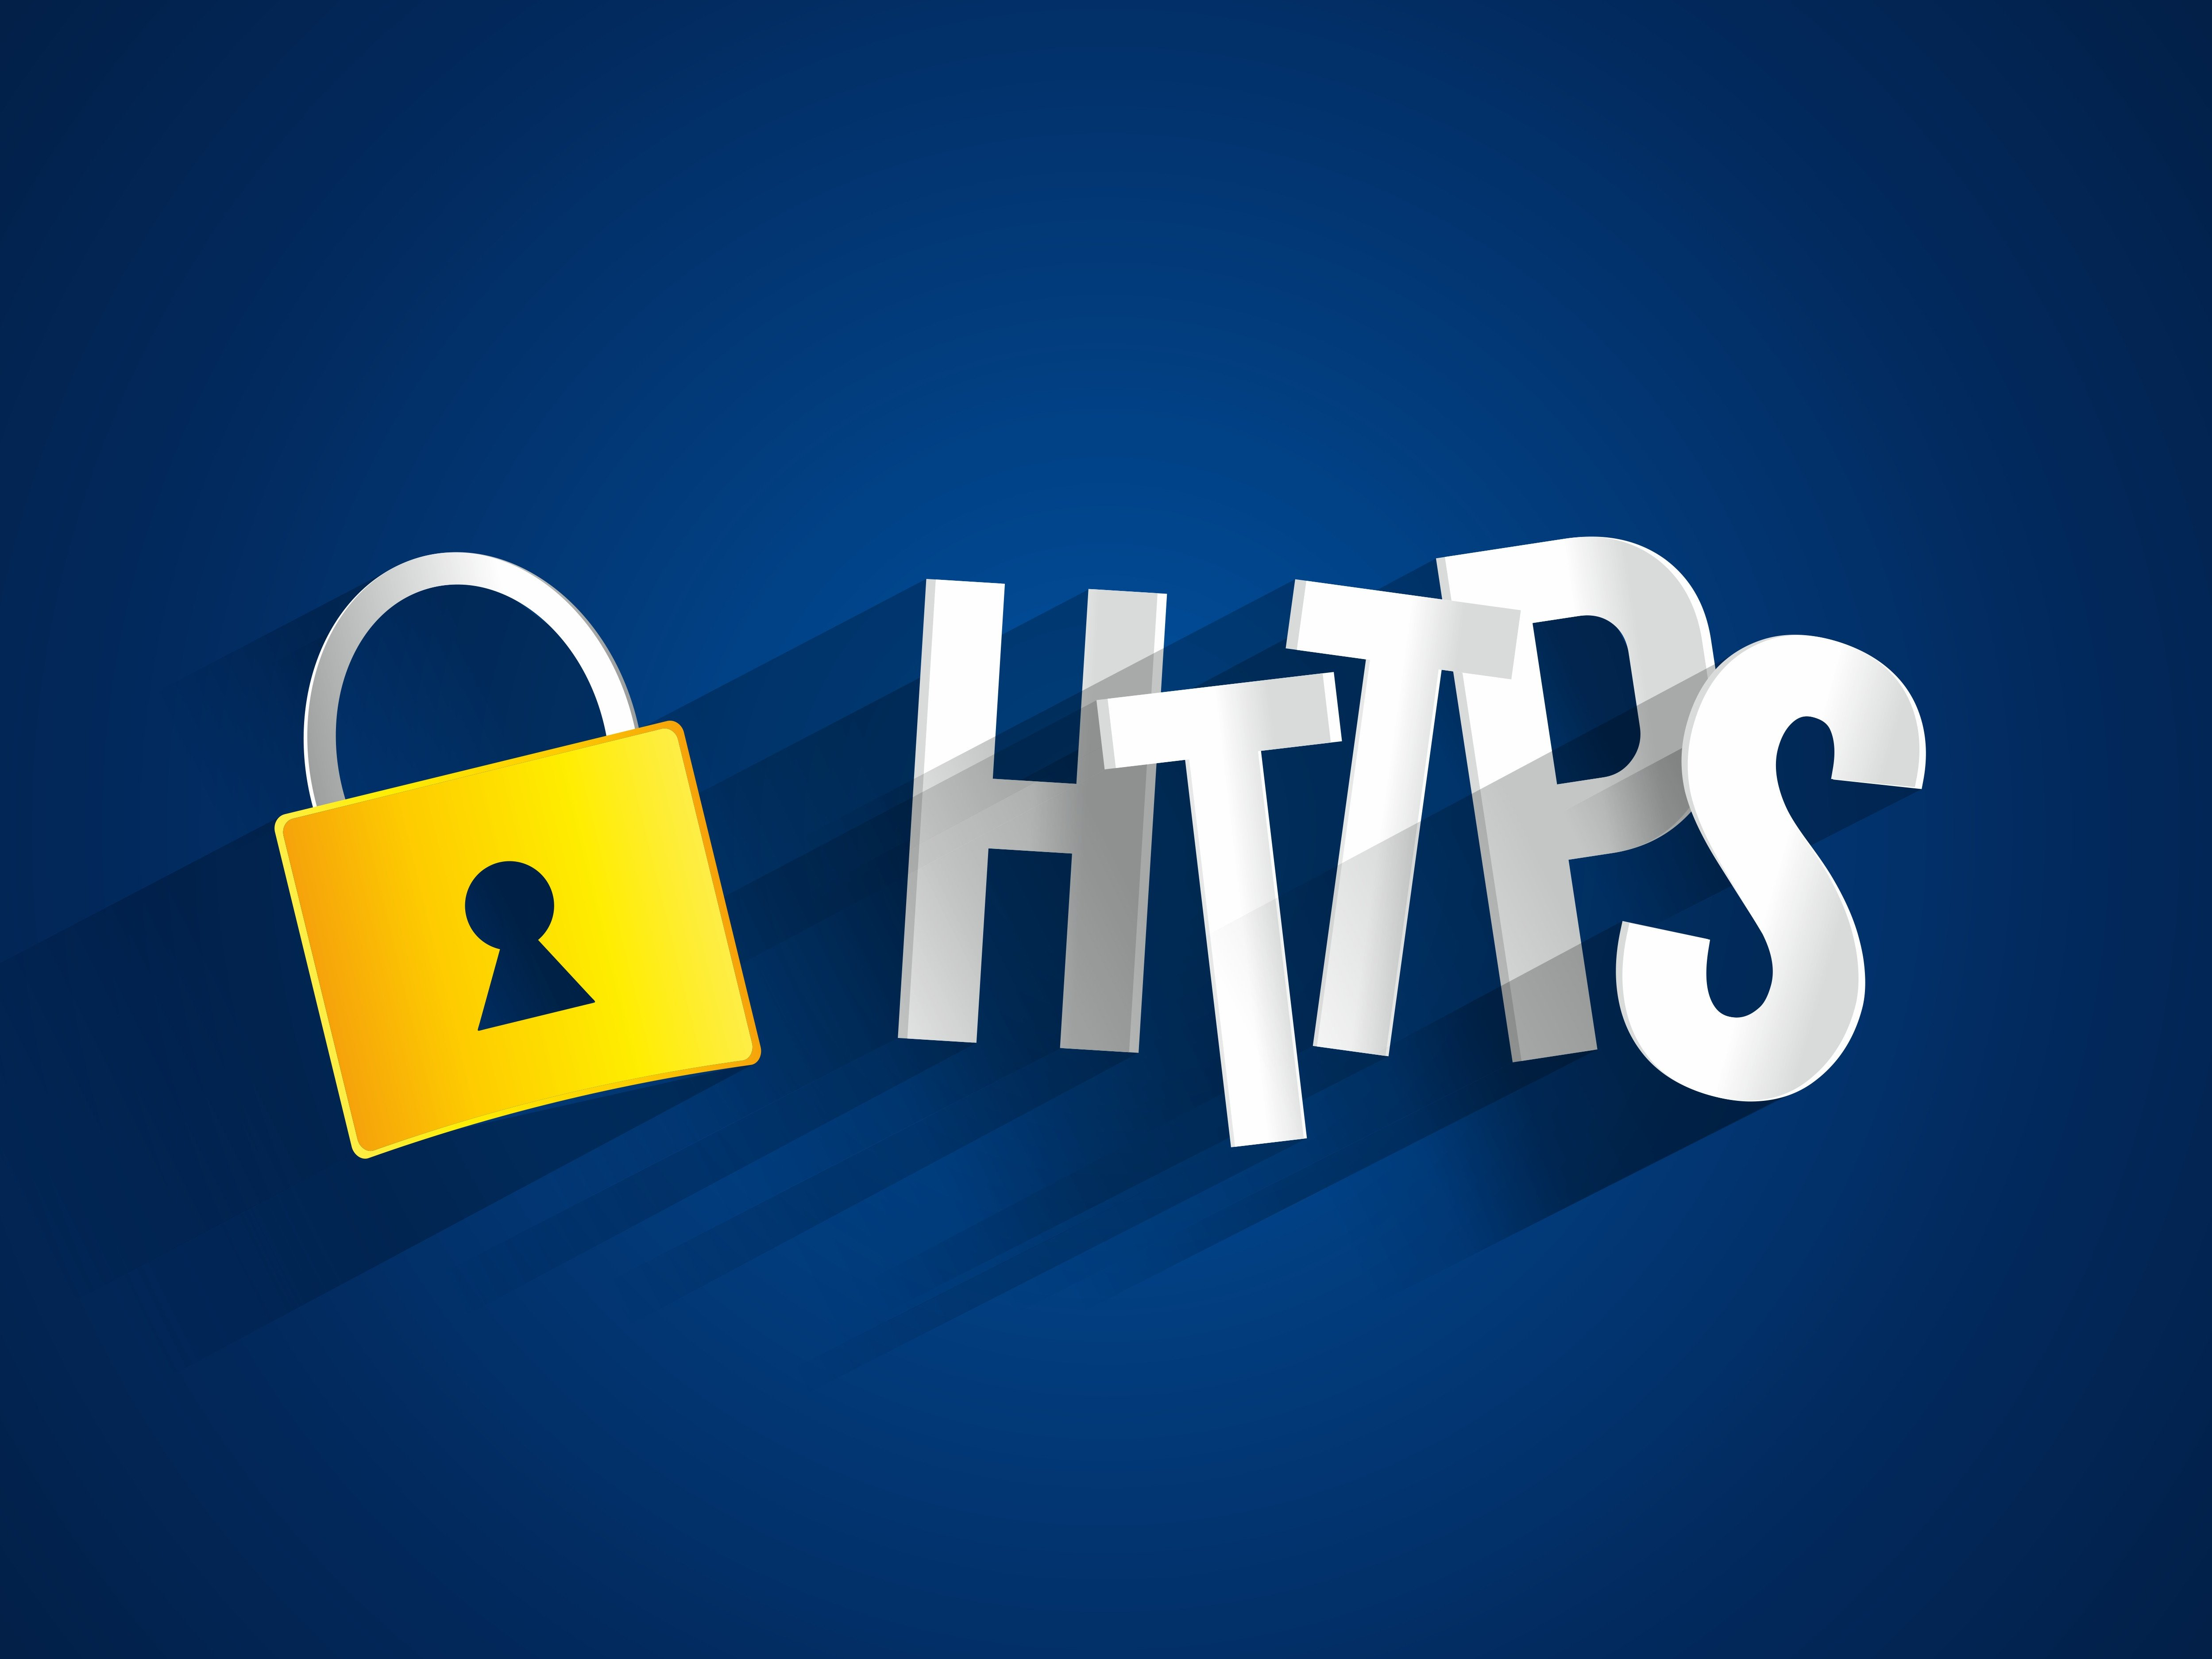 Http: Google Gives Ranking Boost to Secure Https Ssl Sites